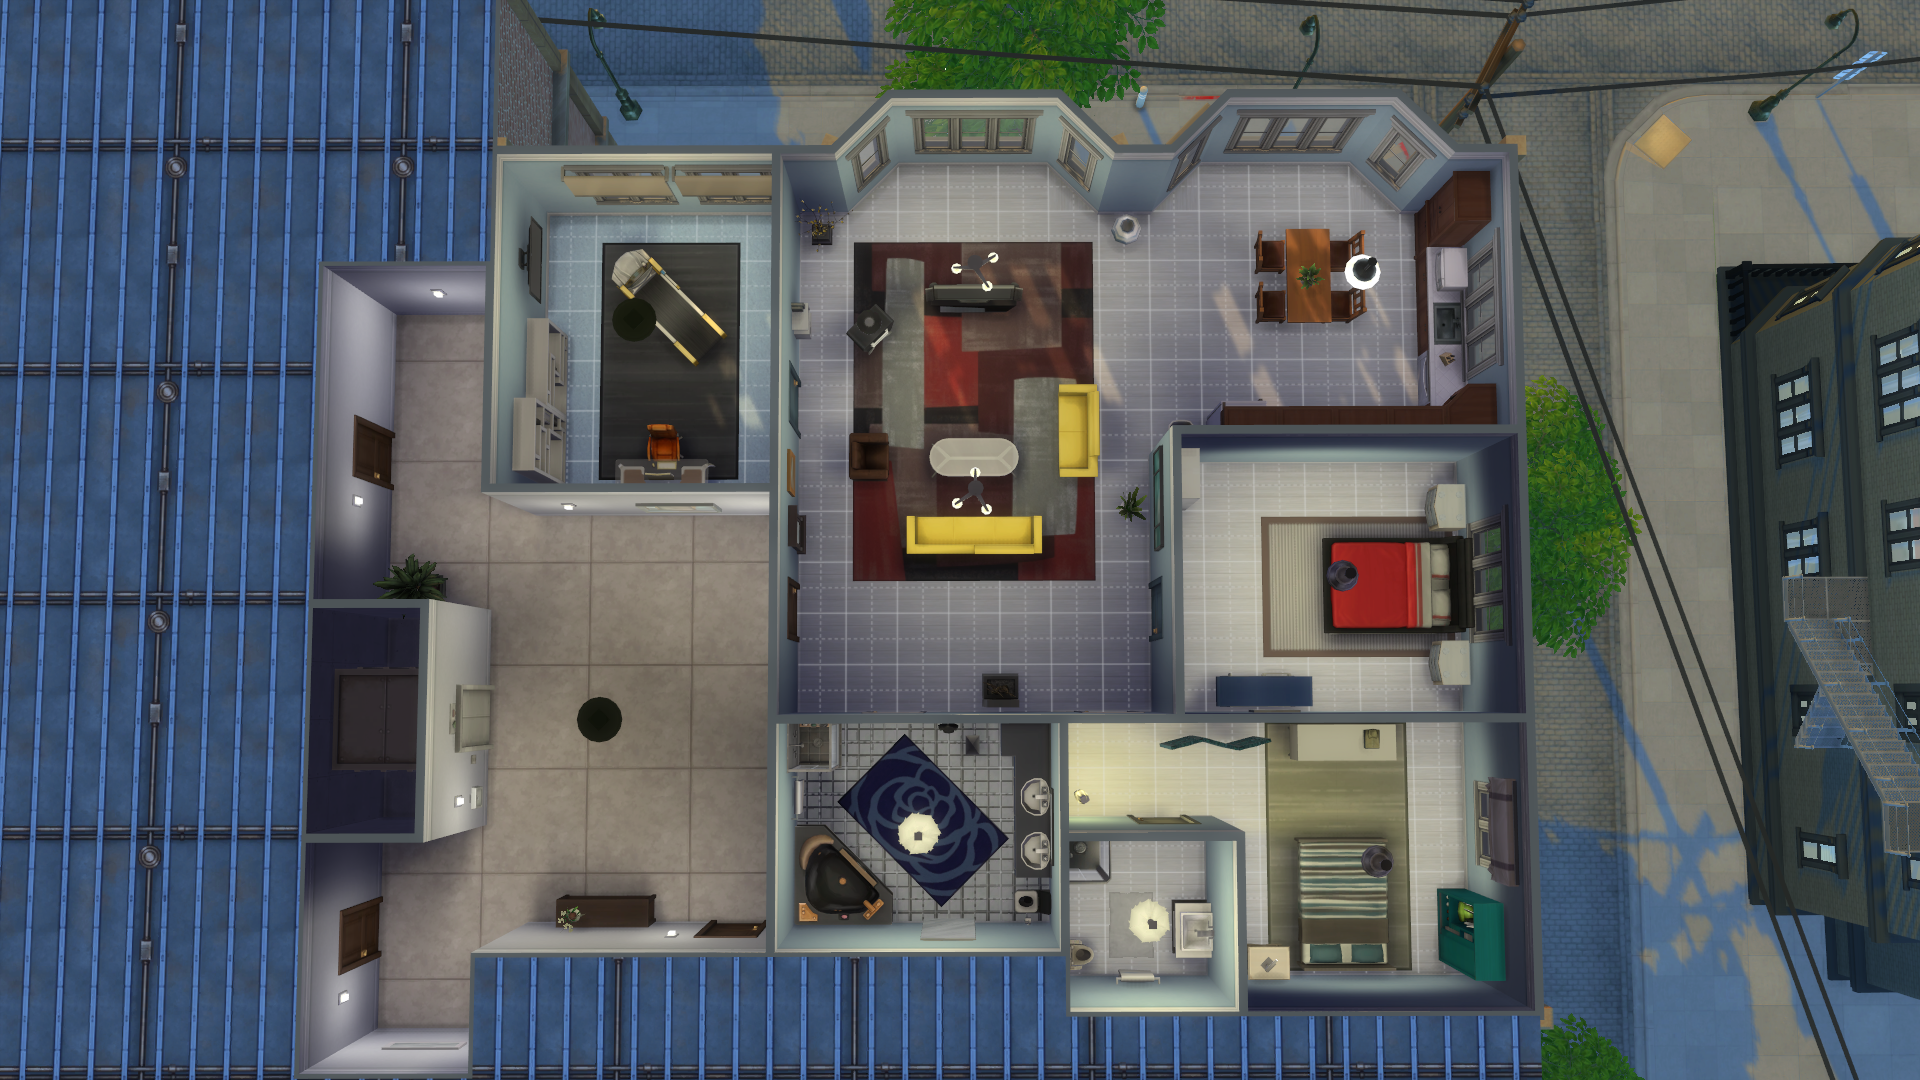 Designing A Better Apartment Remodeling The Culpepper Simsvip,Home Design Blueprints 1000 Sq Ft